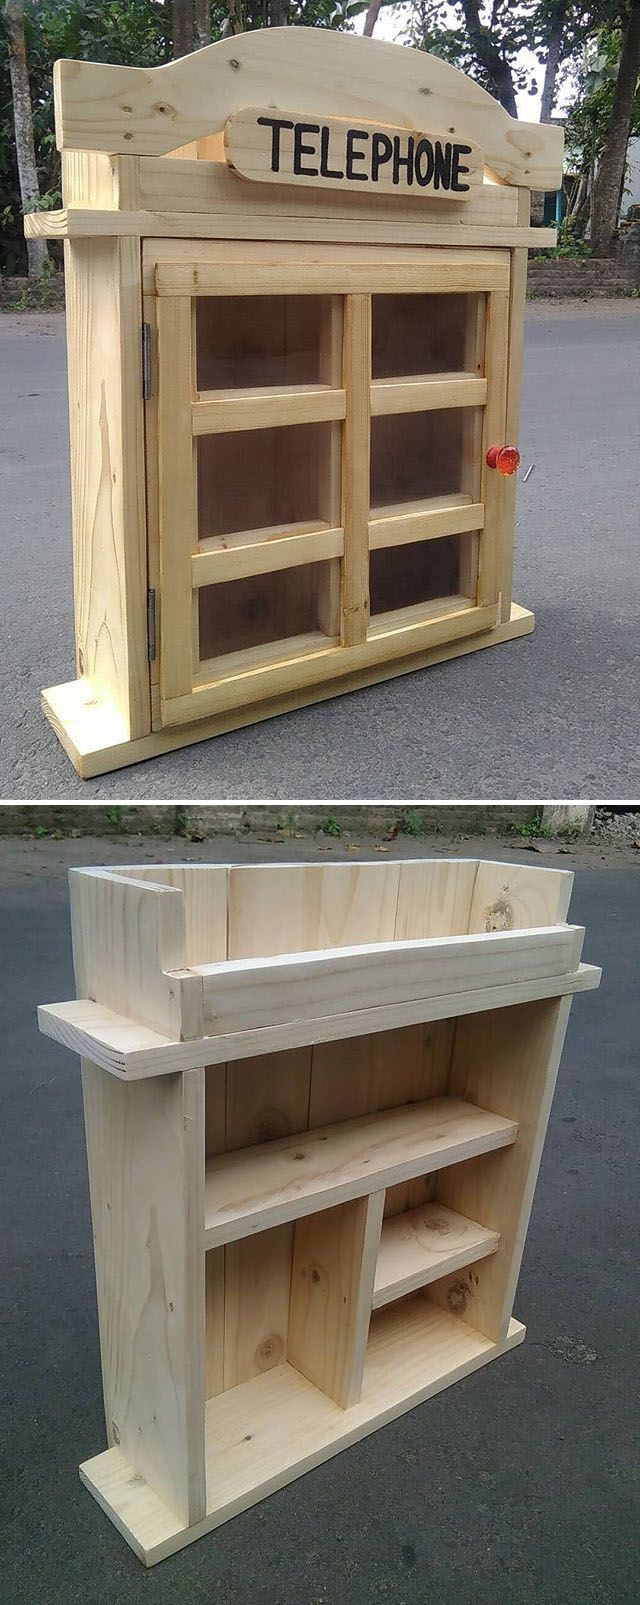 Pallet phone booth ideas